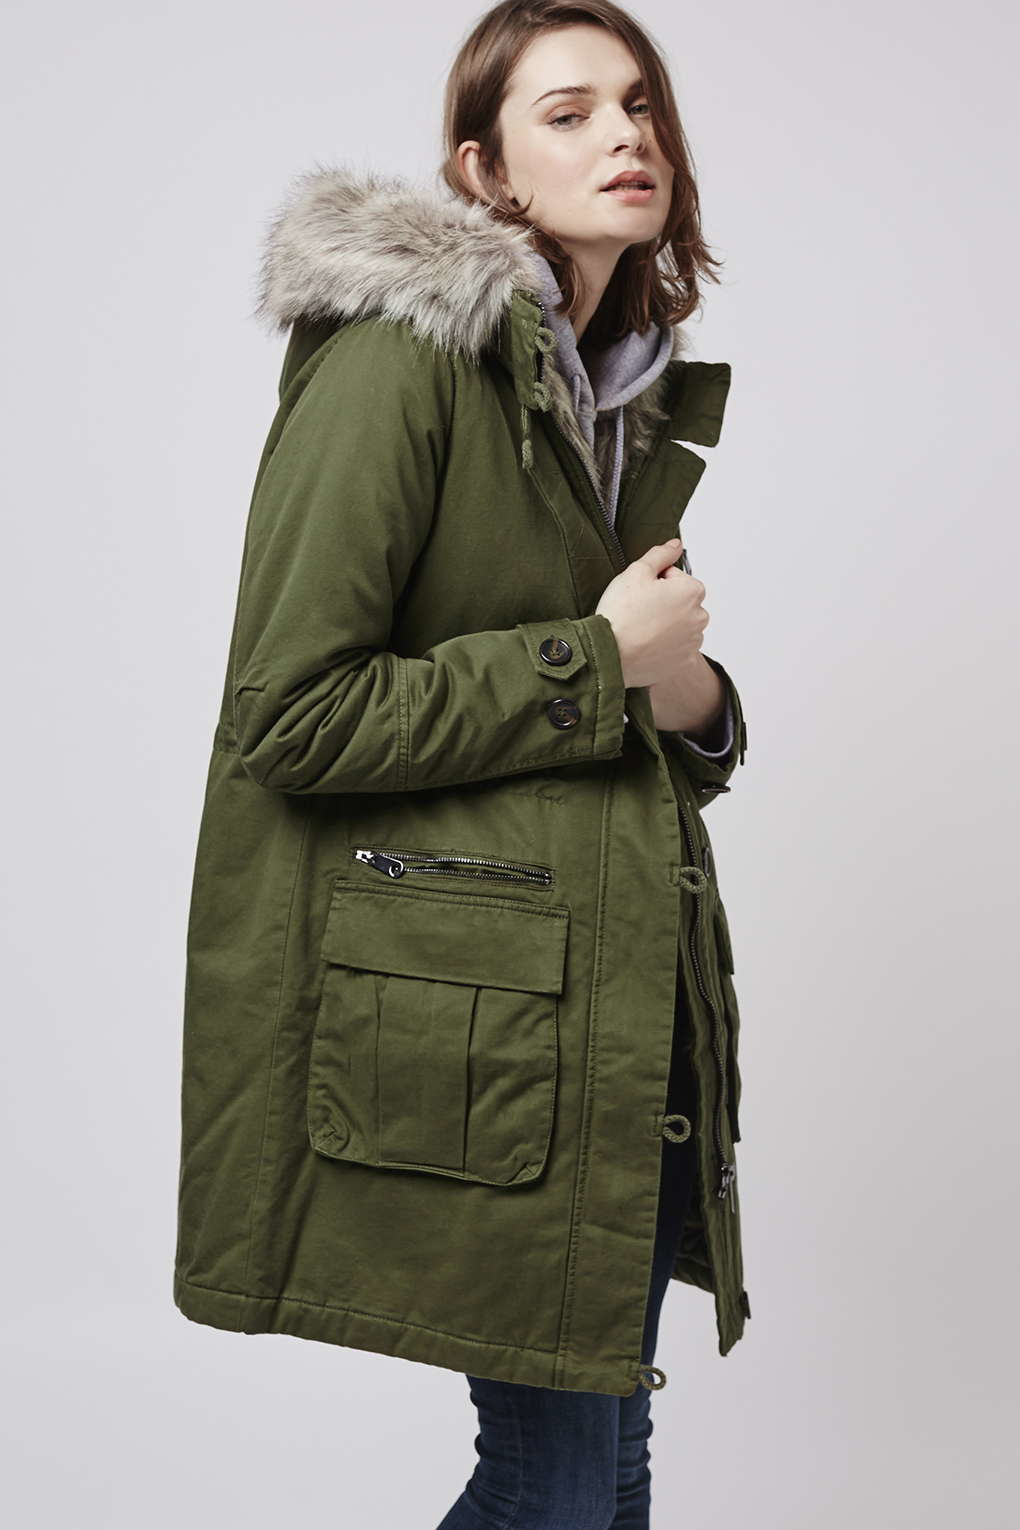 Long Green Parka Coats Fashion Women S Coat 2017